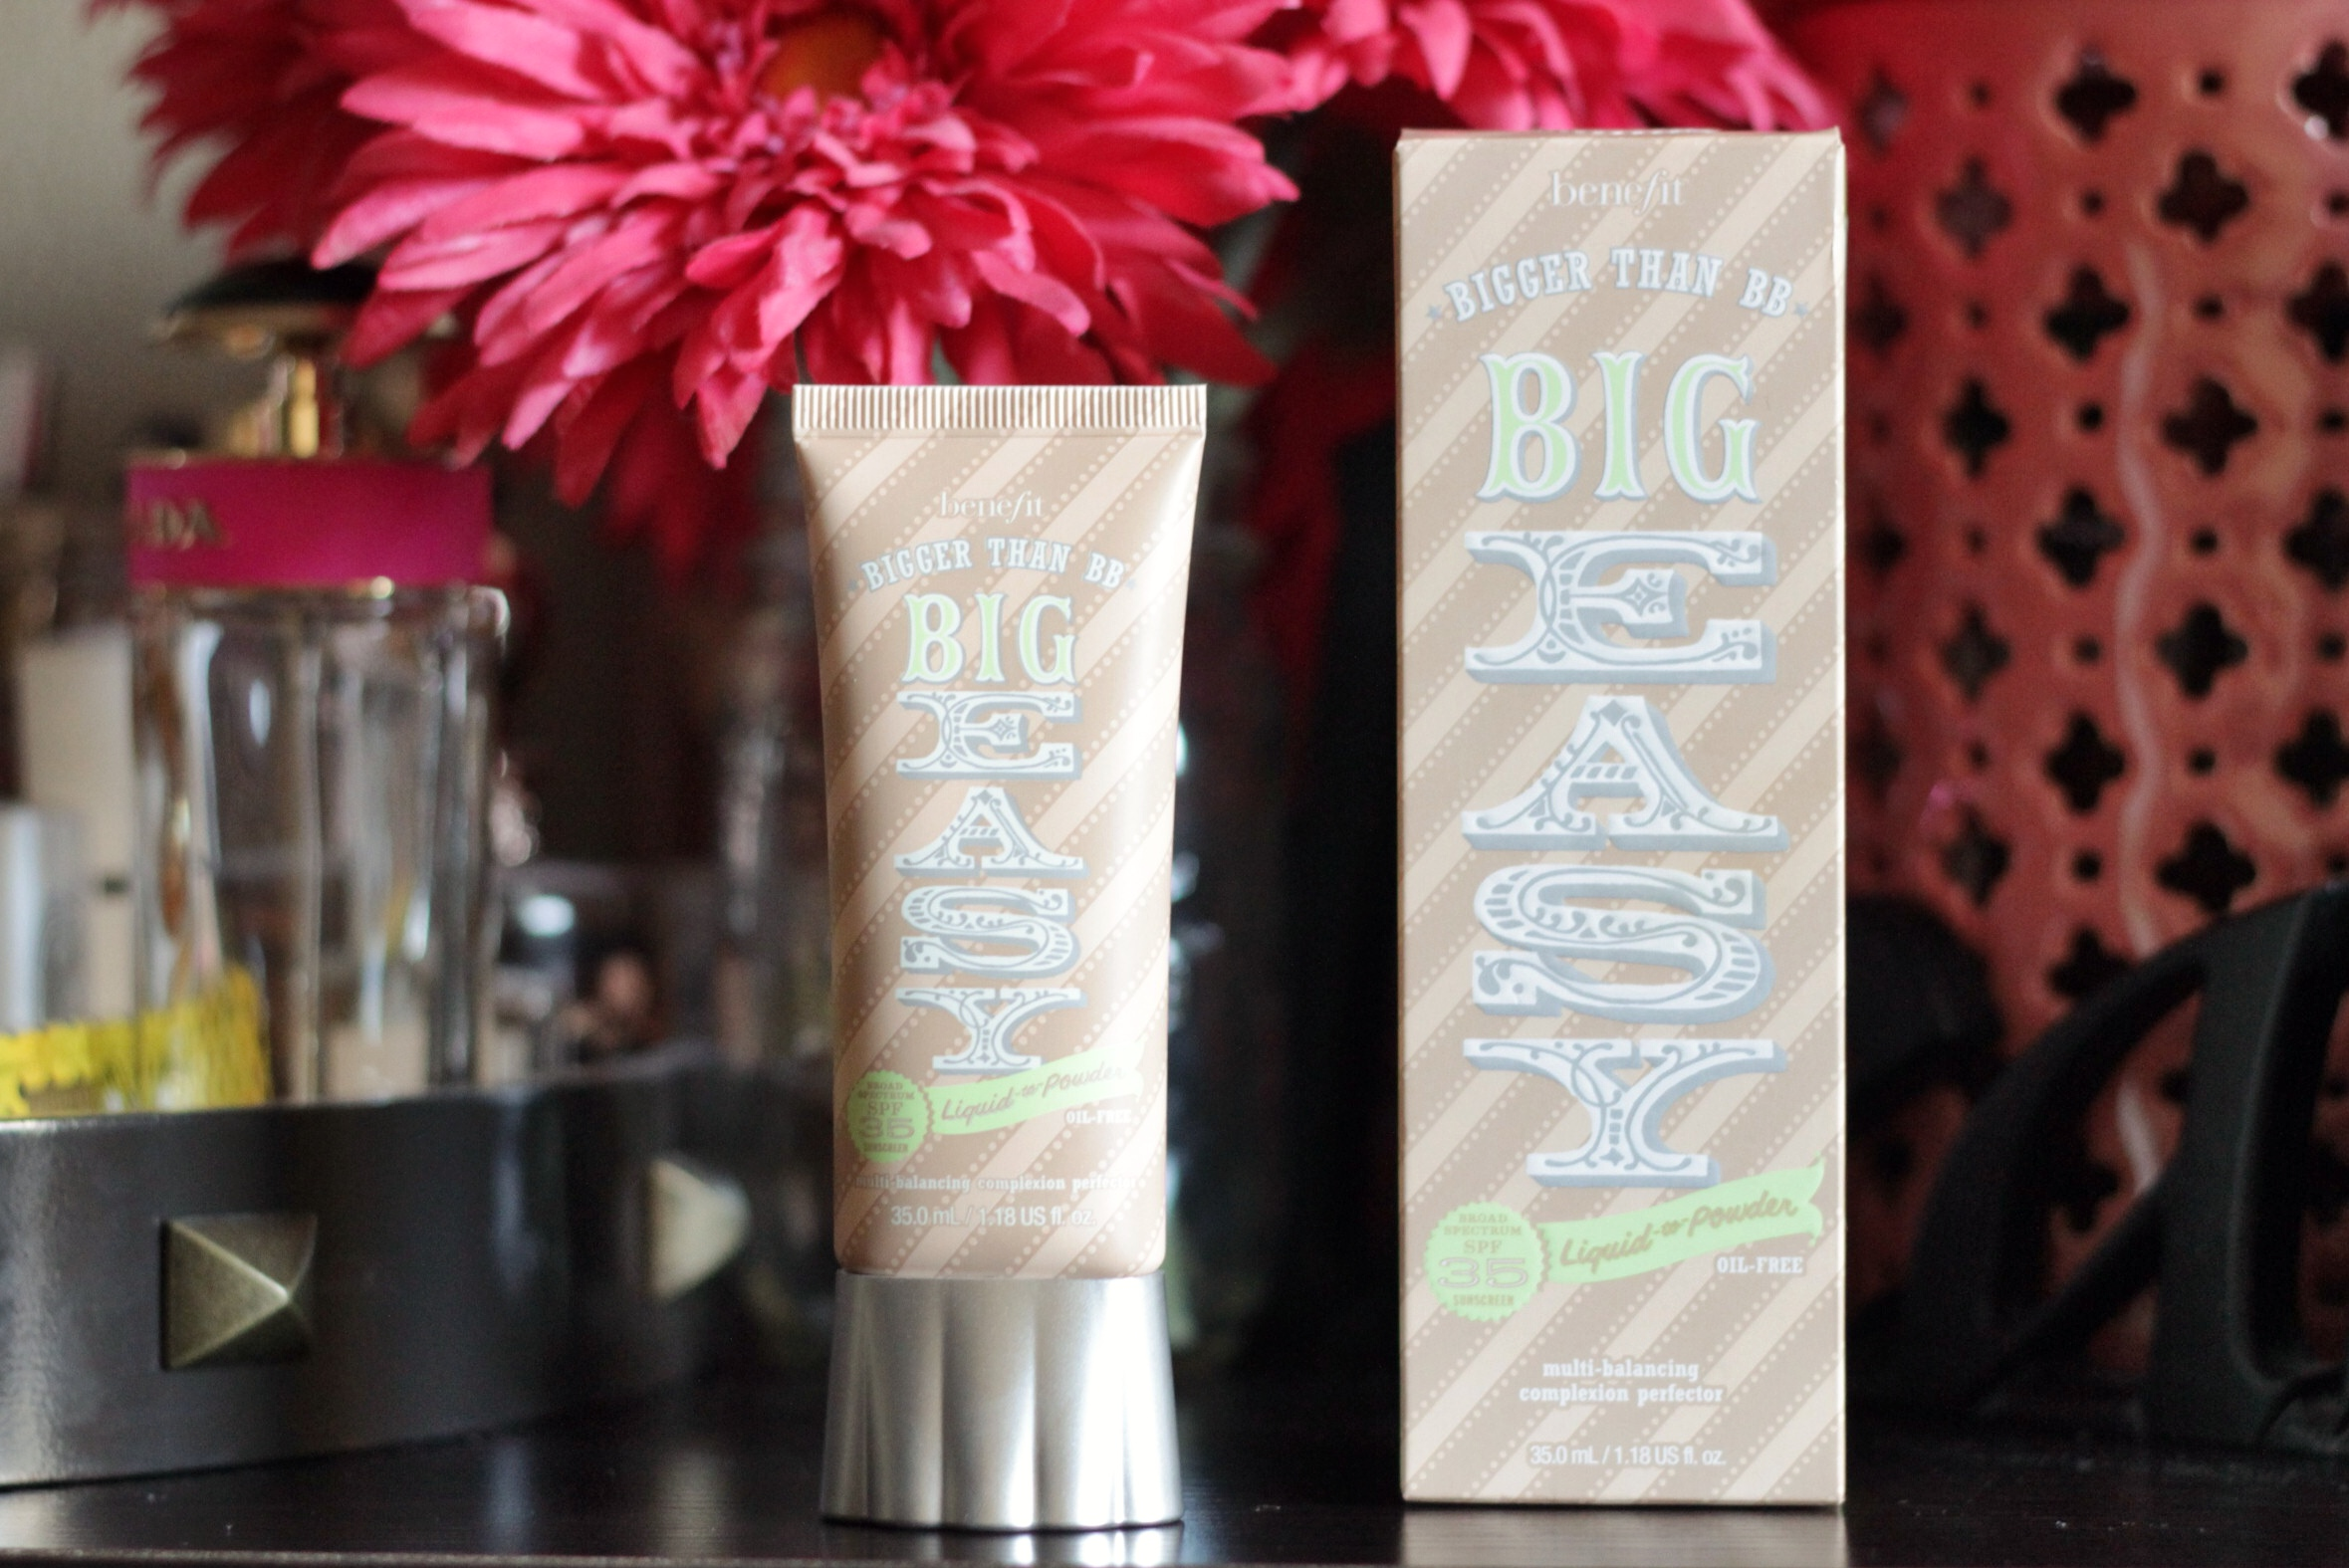 Benefit-Big-Easy-BB